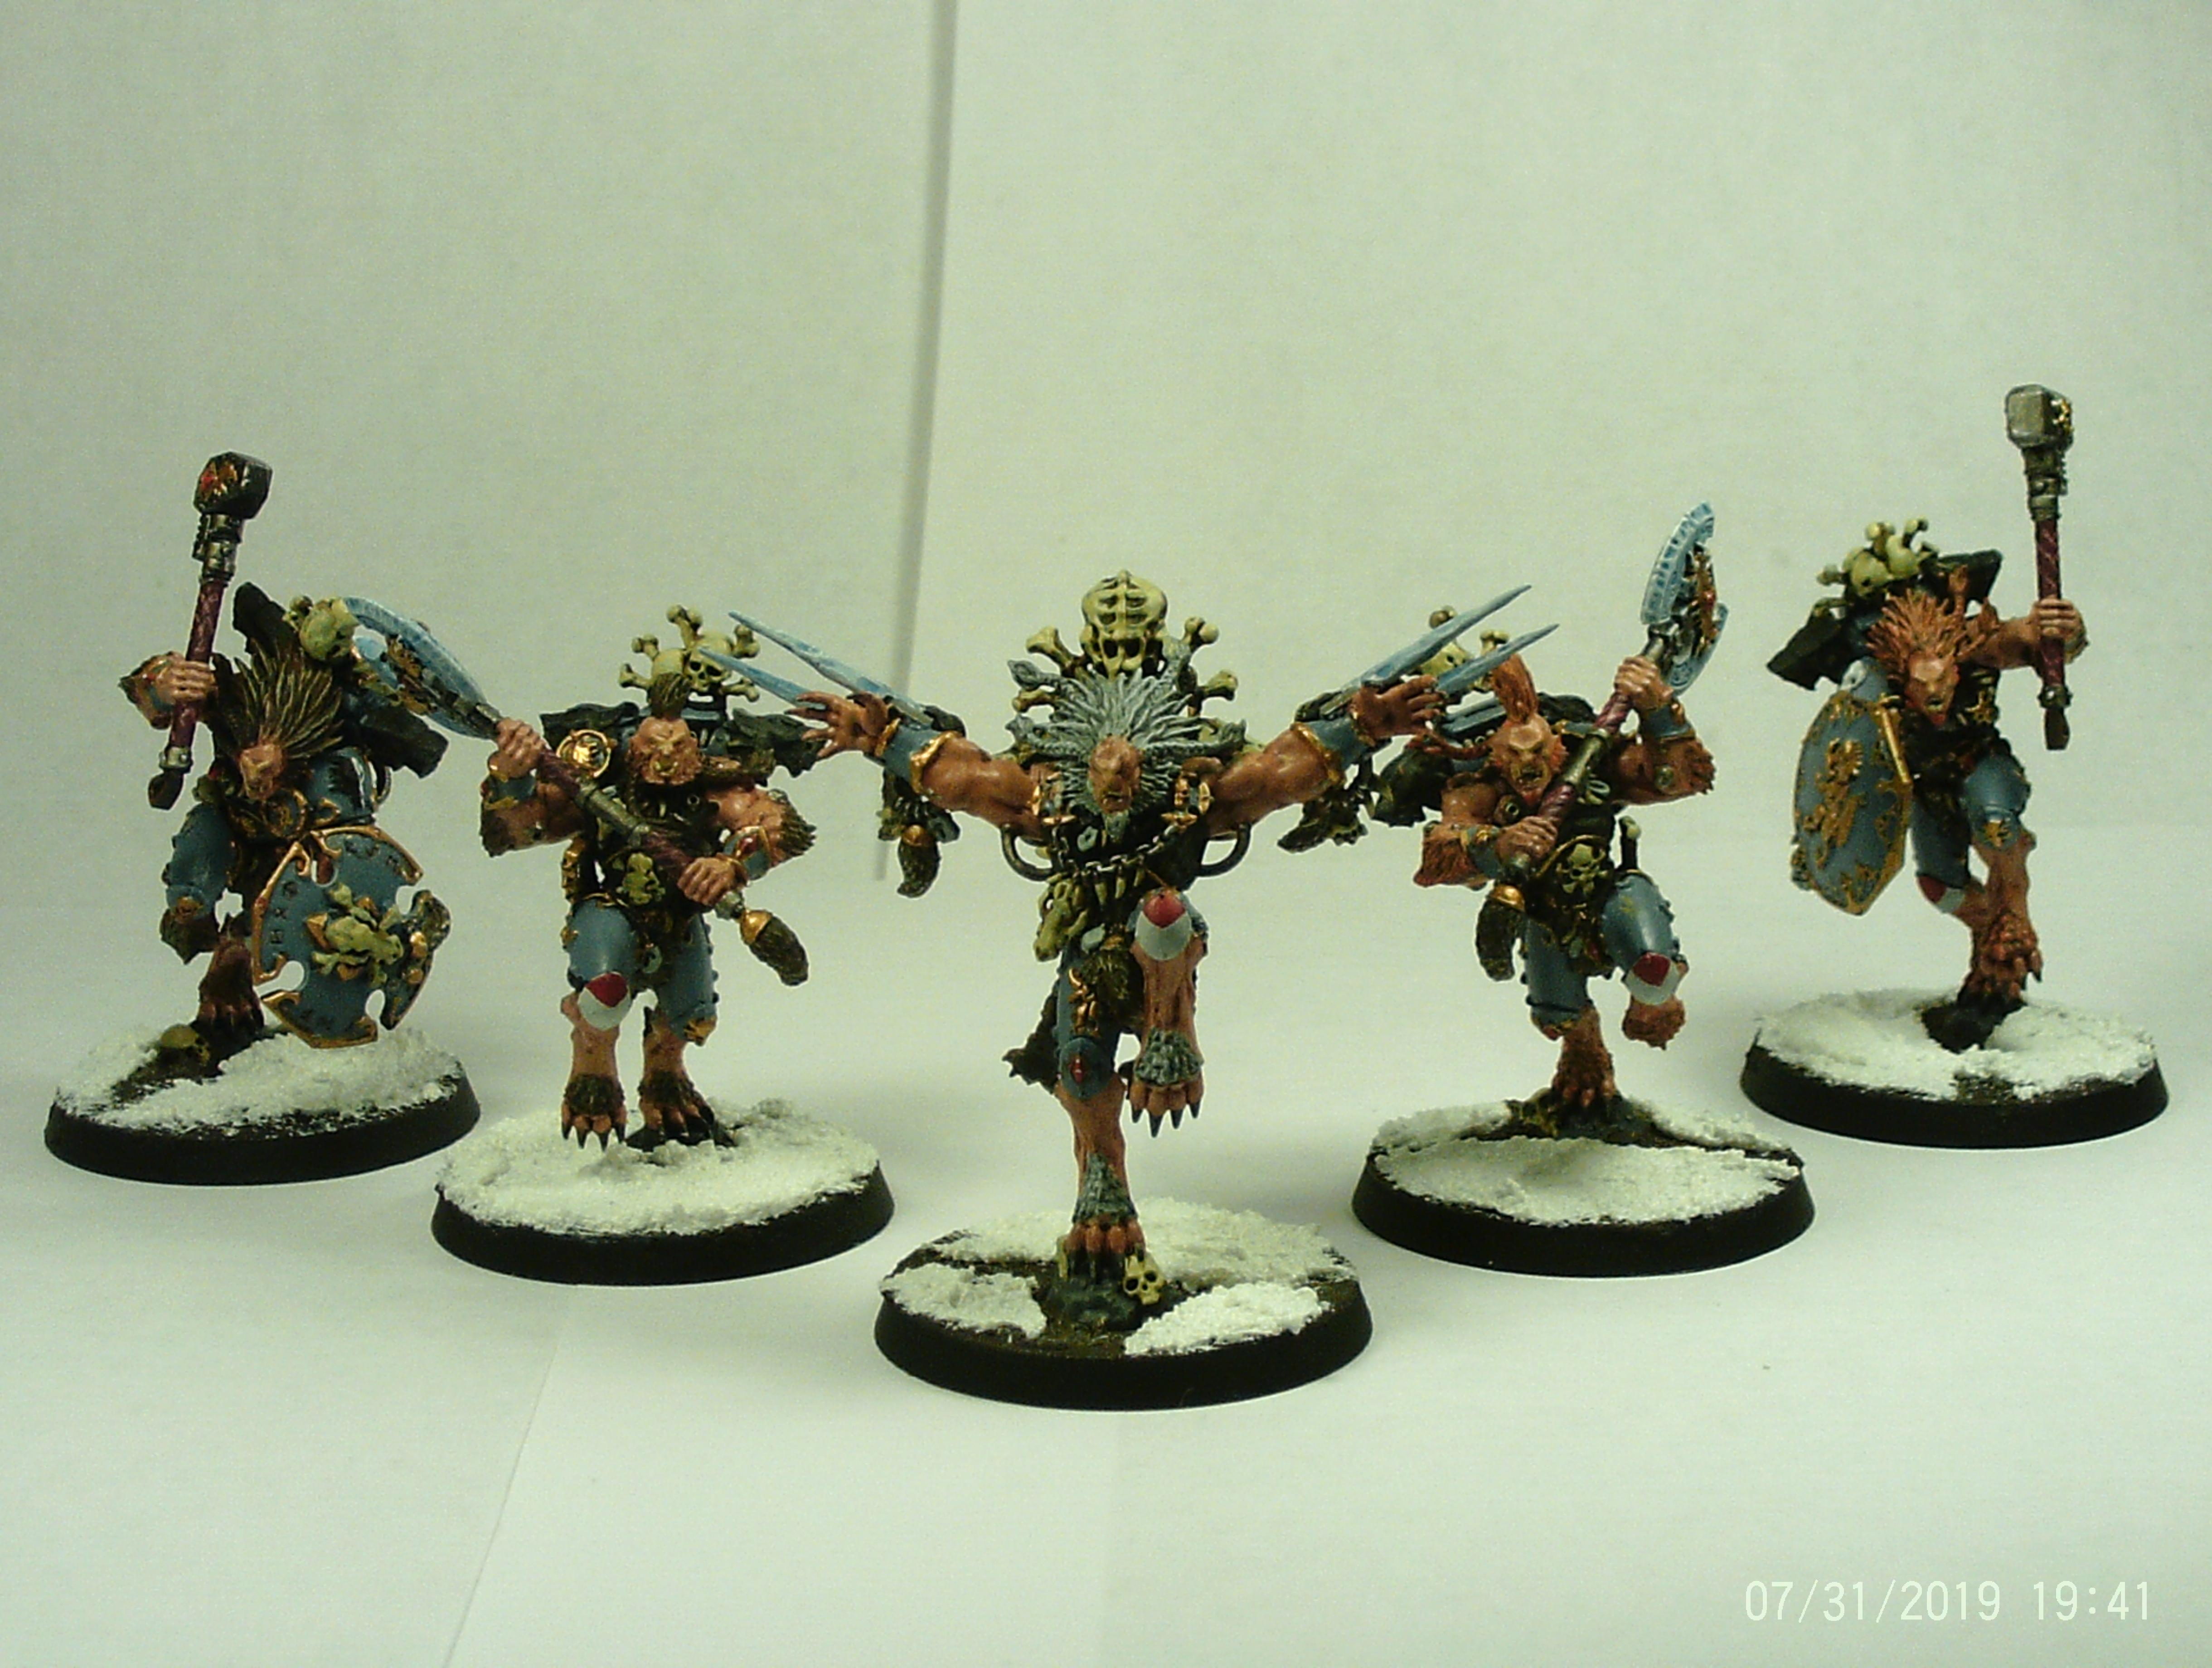 Beast, Fang, Frost, Imperial, Pack, Space, Space Marines, Werewolf, Wolf, Wolves, Wulfen